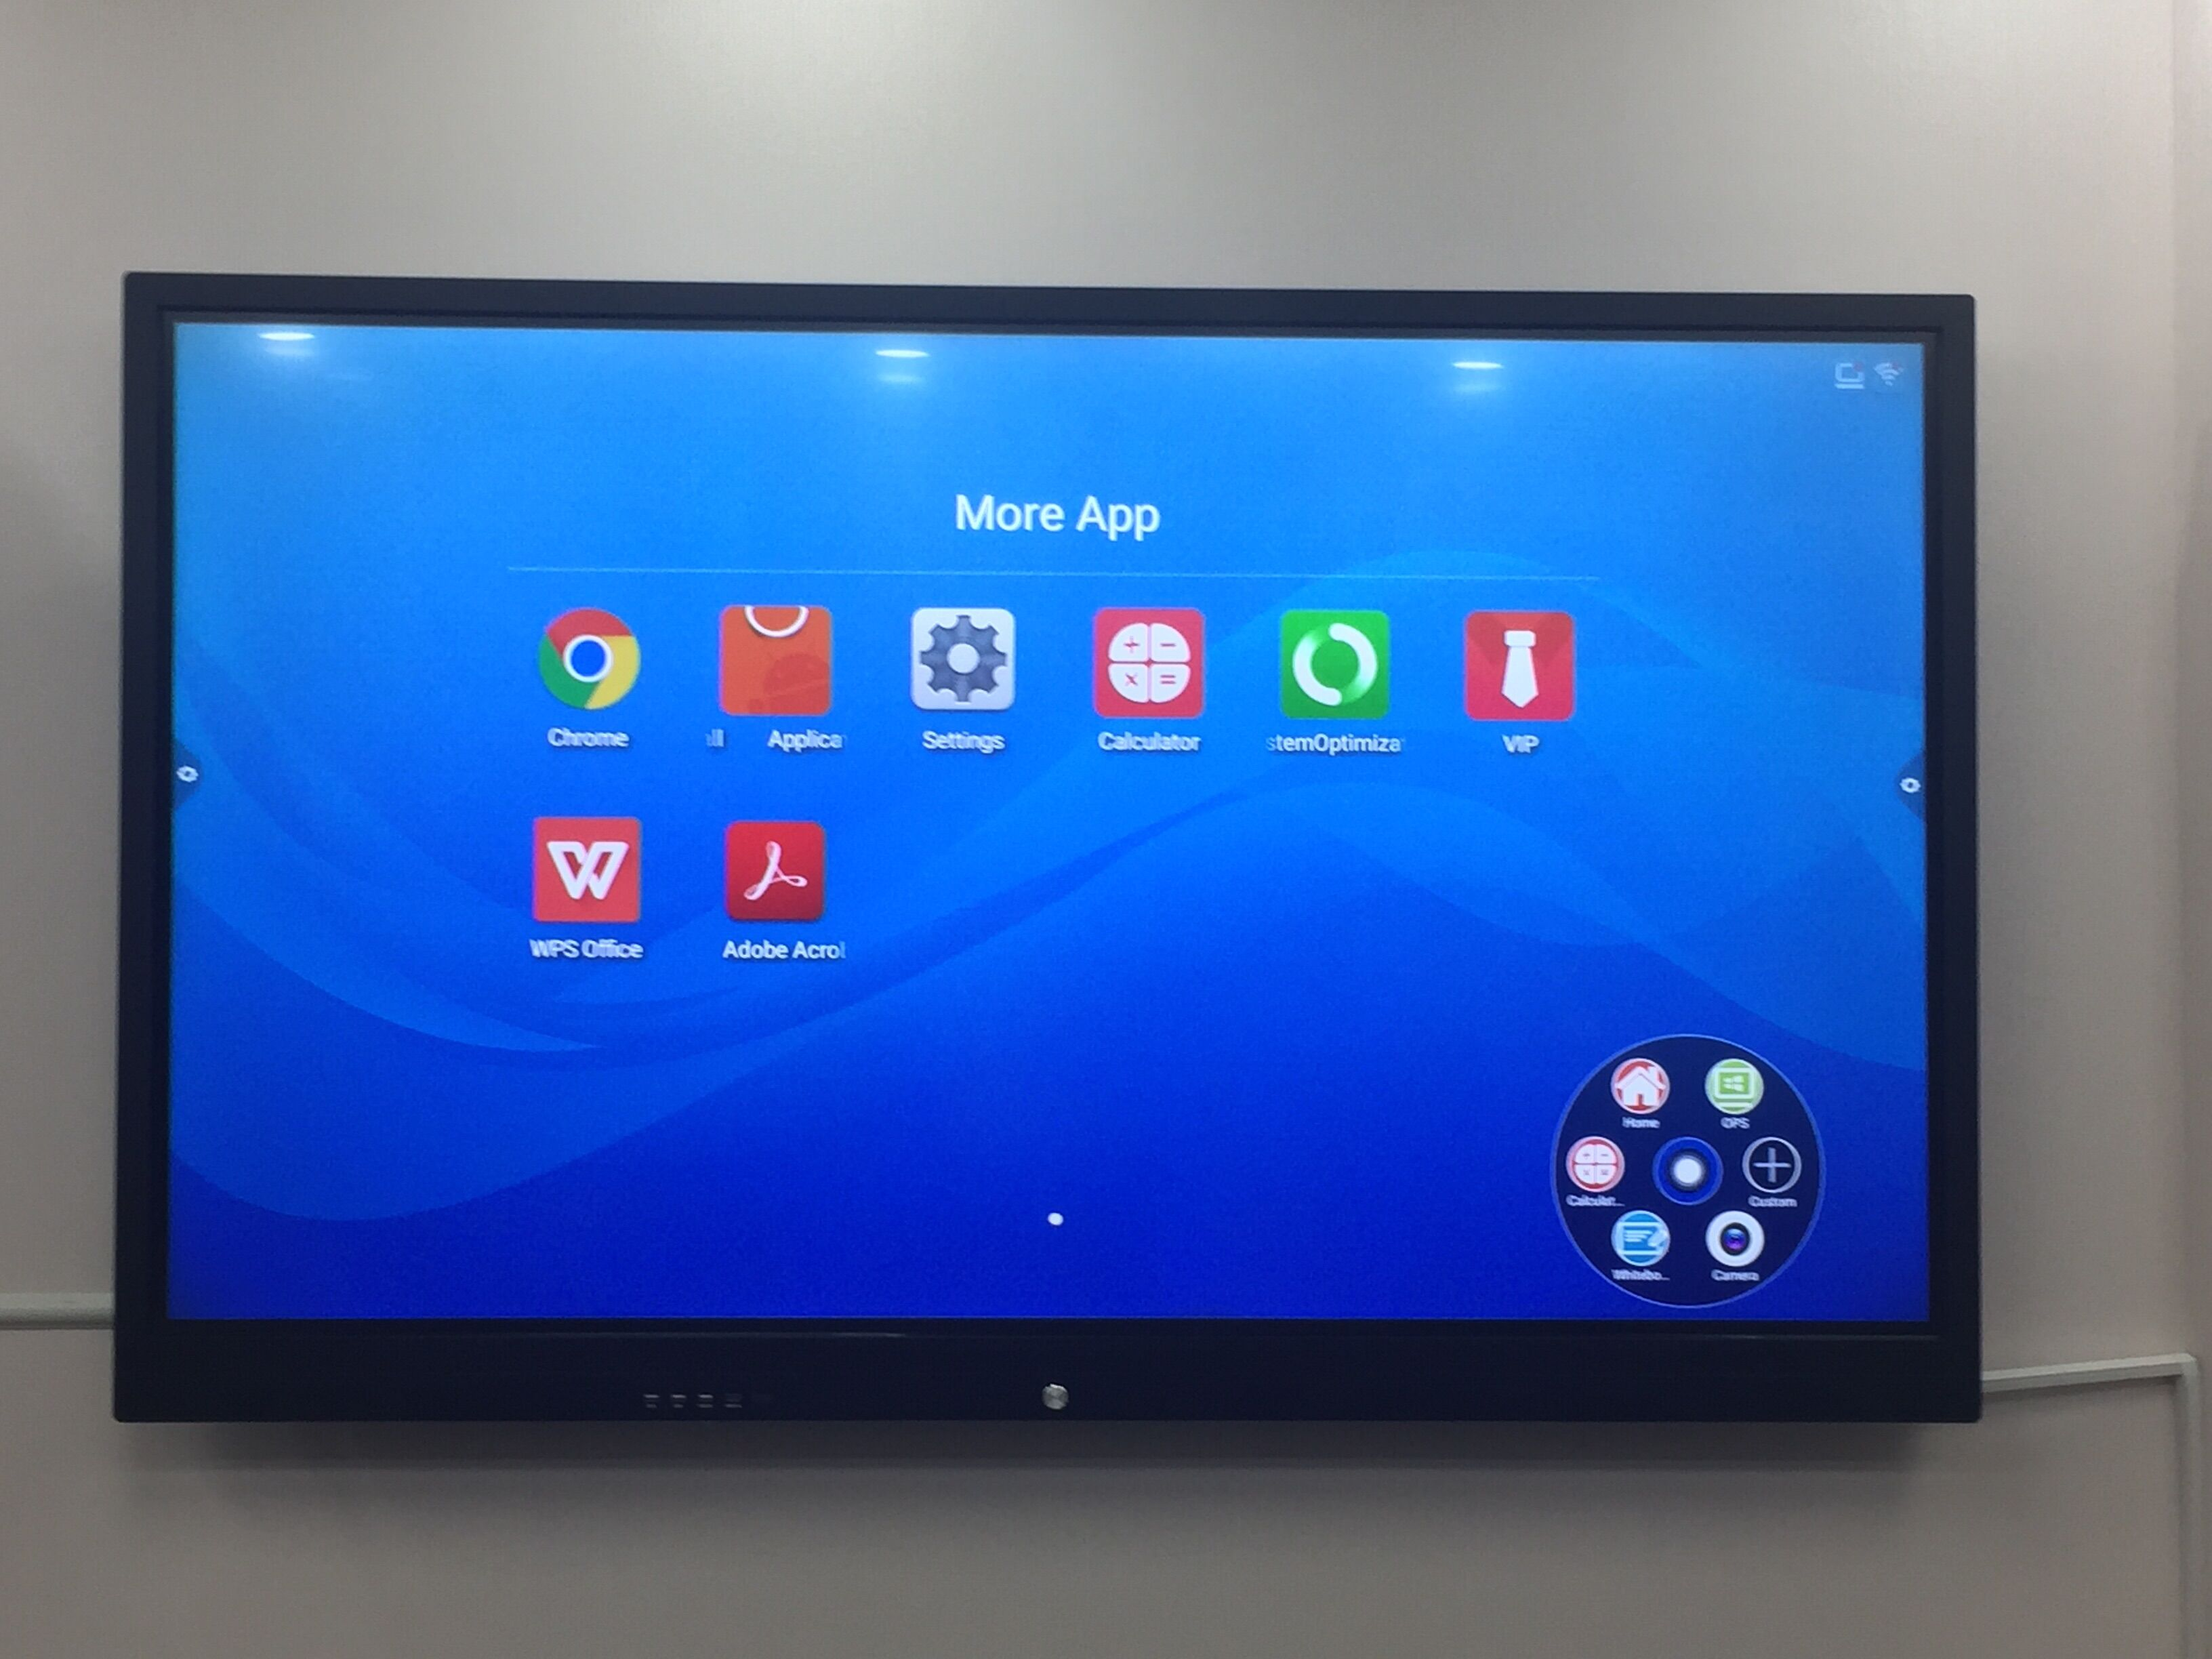 Korting! Smart Goedkope 85 Inch Vinger Touch Usb Interactieve Whiteboard Fabrikant voor Teaching Meeting En Kantoor